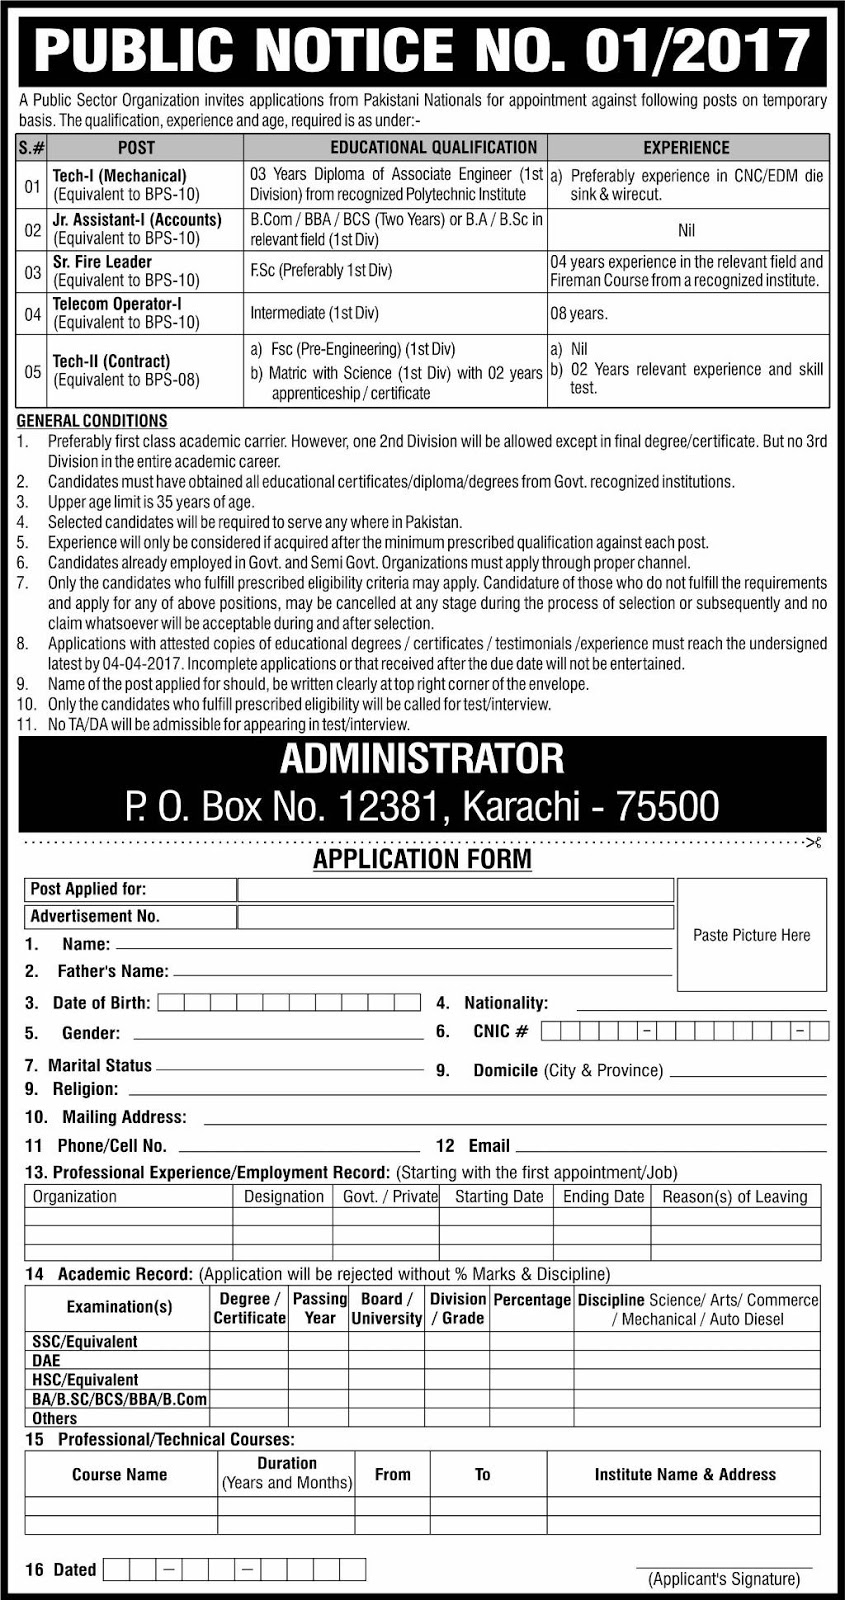 PO Box 12381 Karachi Pakistan Atomic Energy Commission Jobs